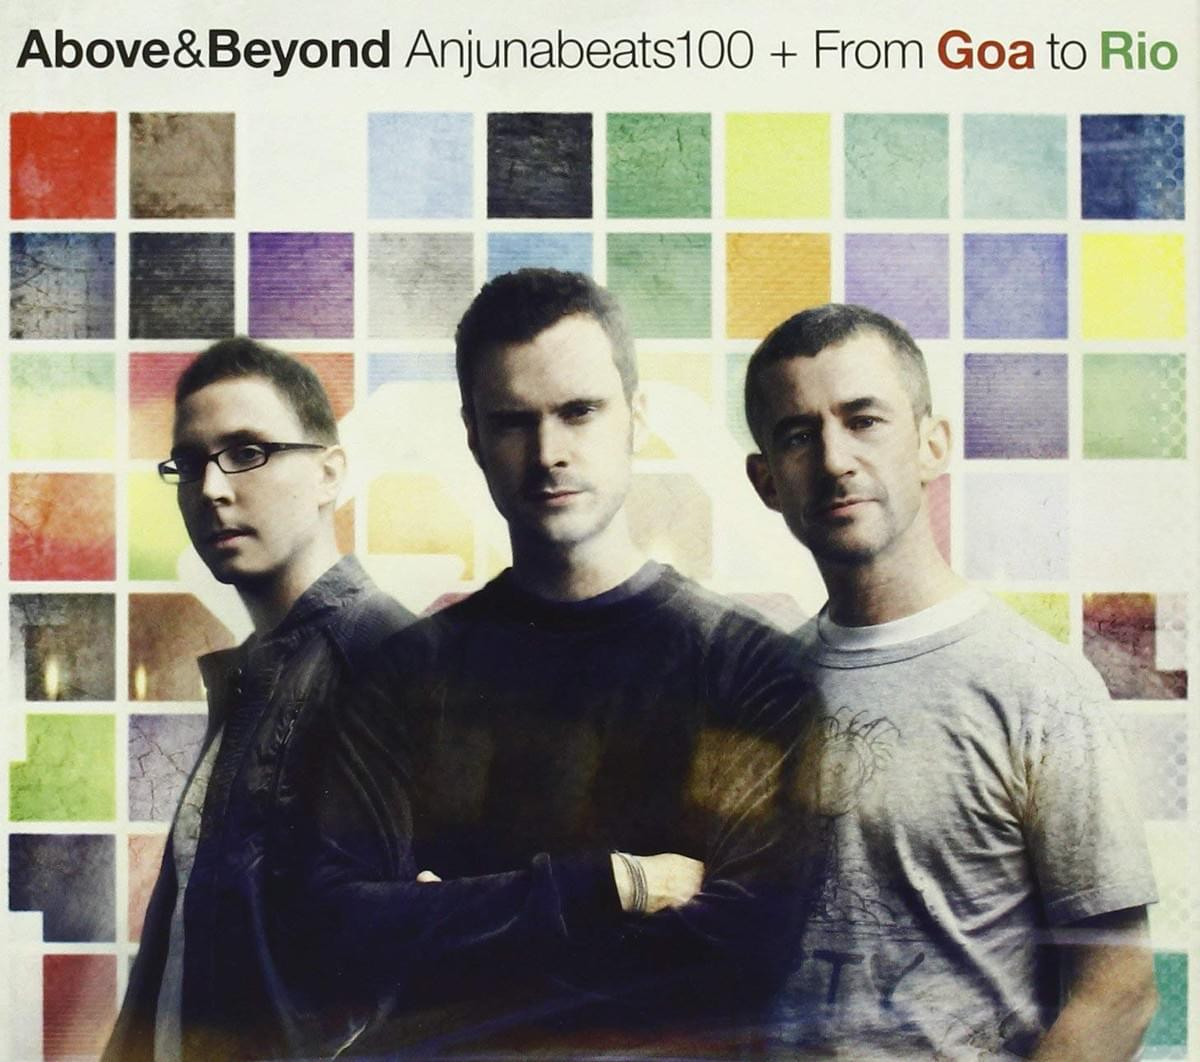 Above & Beyond - Anjunabeats100 - From Goa To Rio